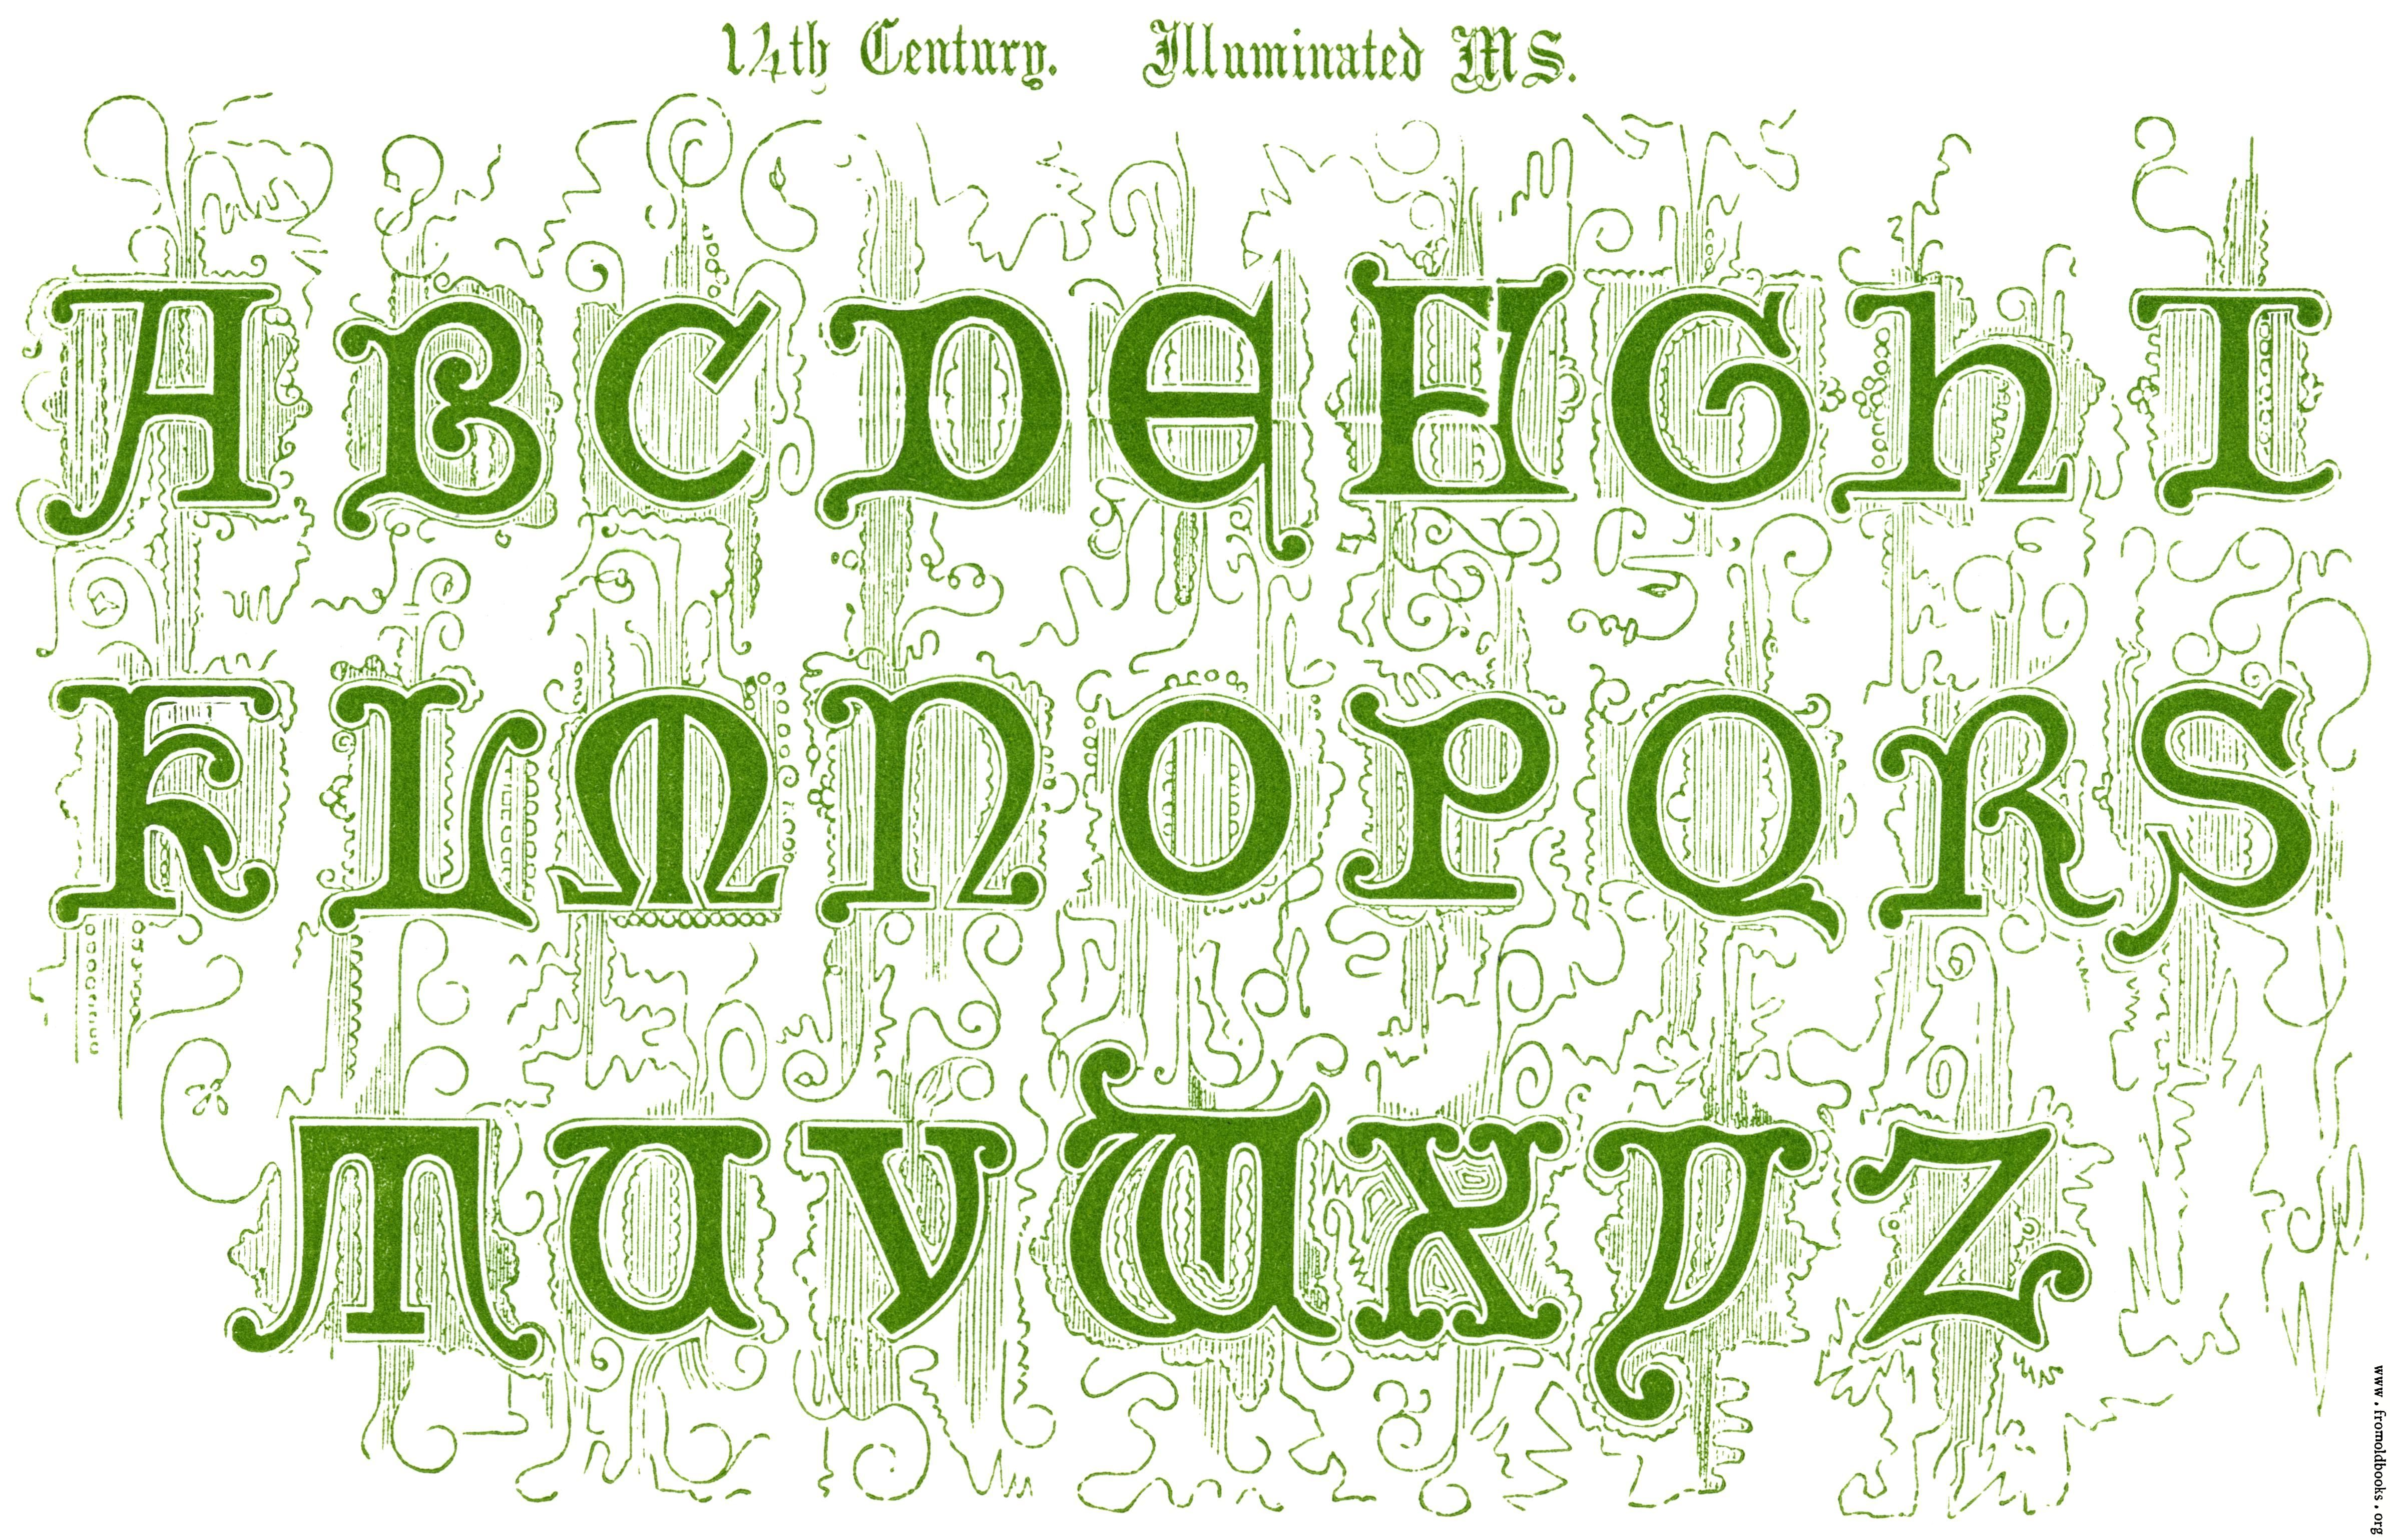 17 14th Century Illuminated Ms In 2020 Lettering Alphabet Fonts Typography Alphabet Lettering